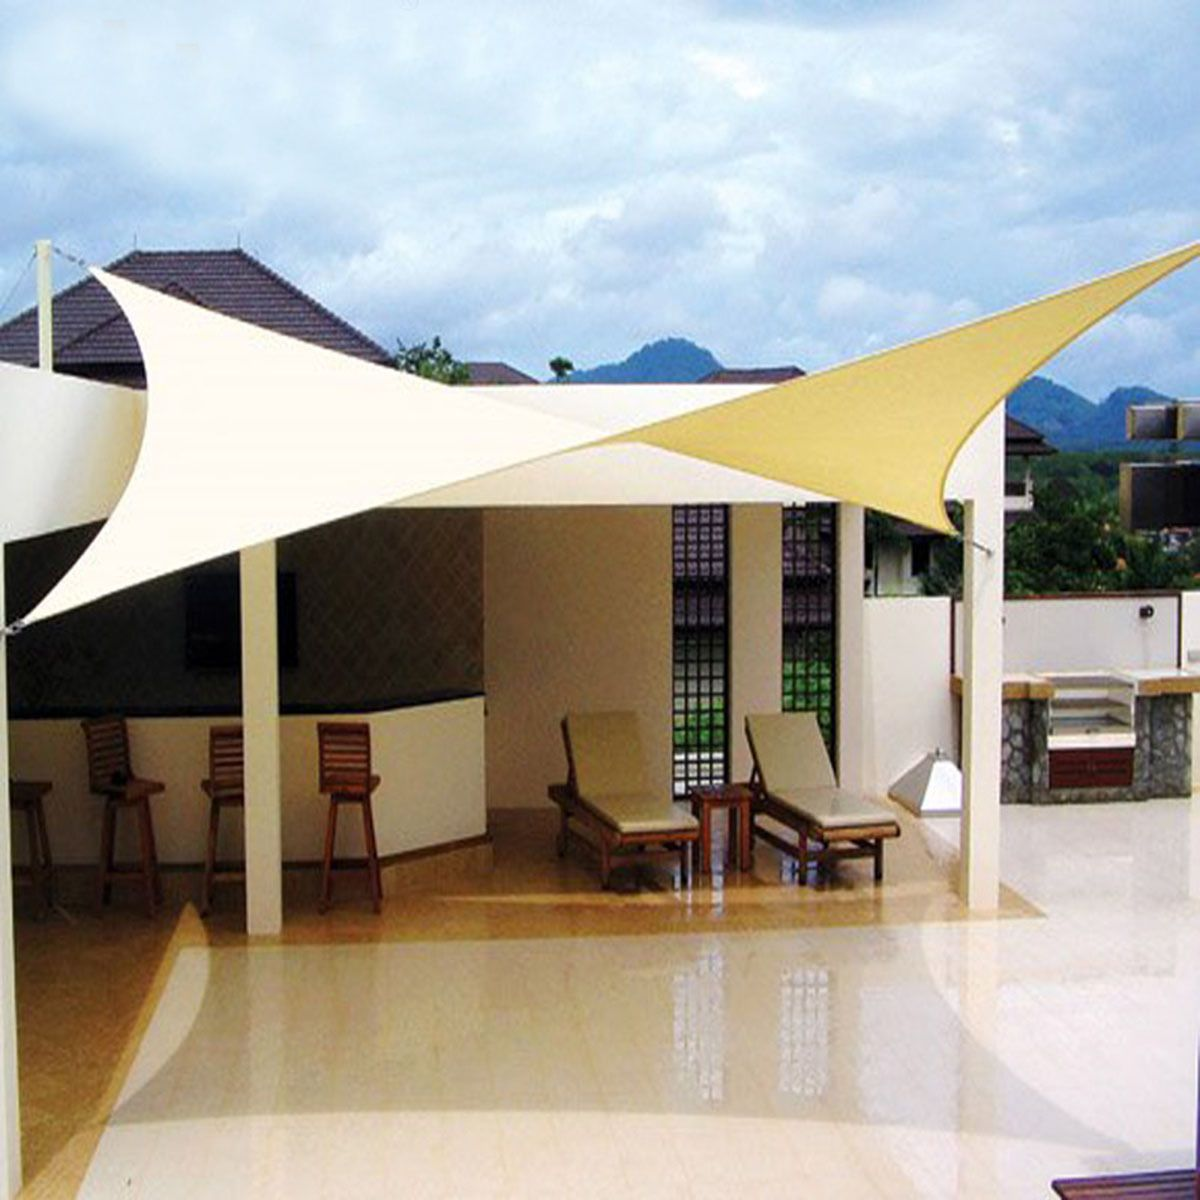 9.8u0027x13u0027 Rectangle Sun Shade Sail UV Top Cover Outdoor Canopy Patio ...